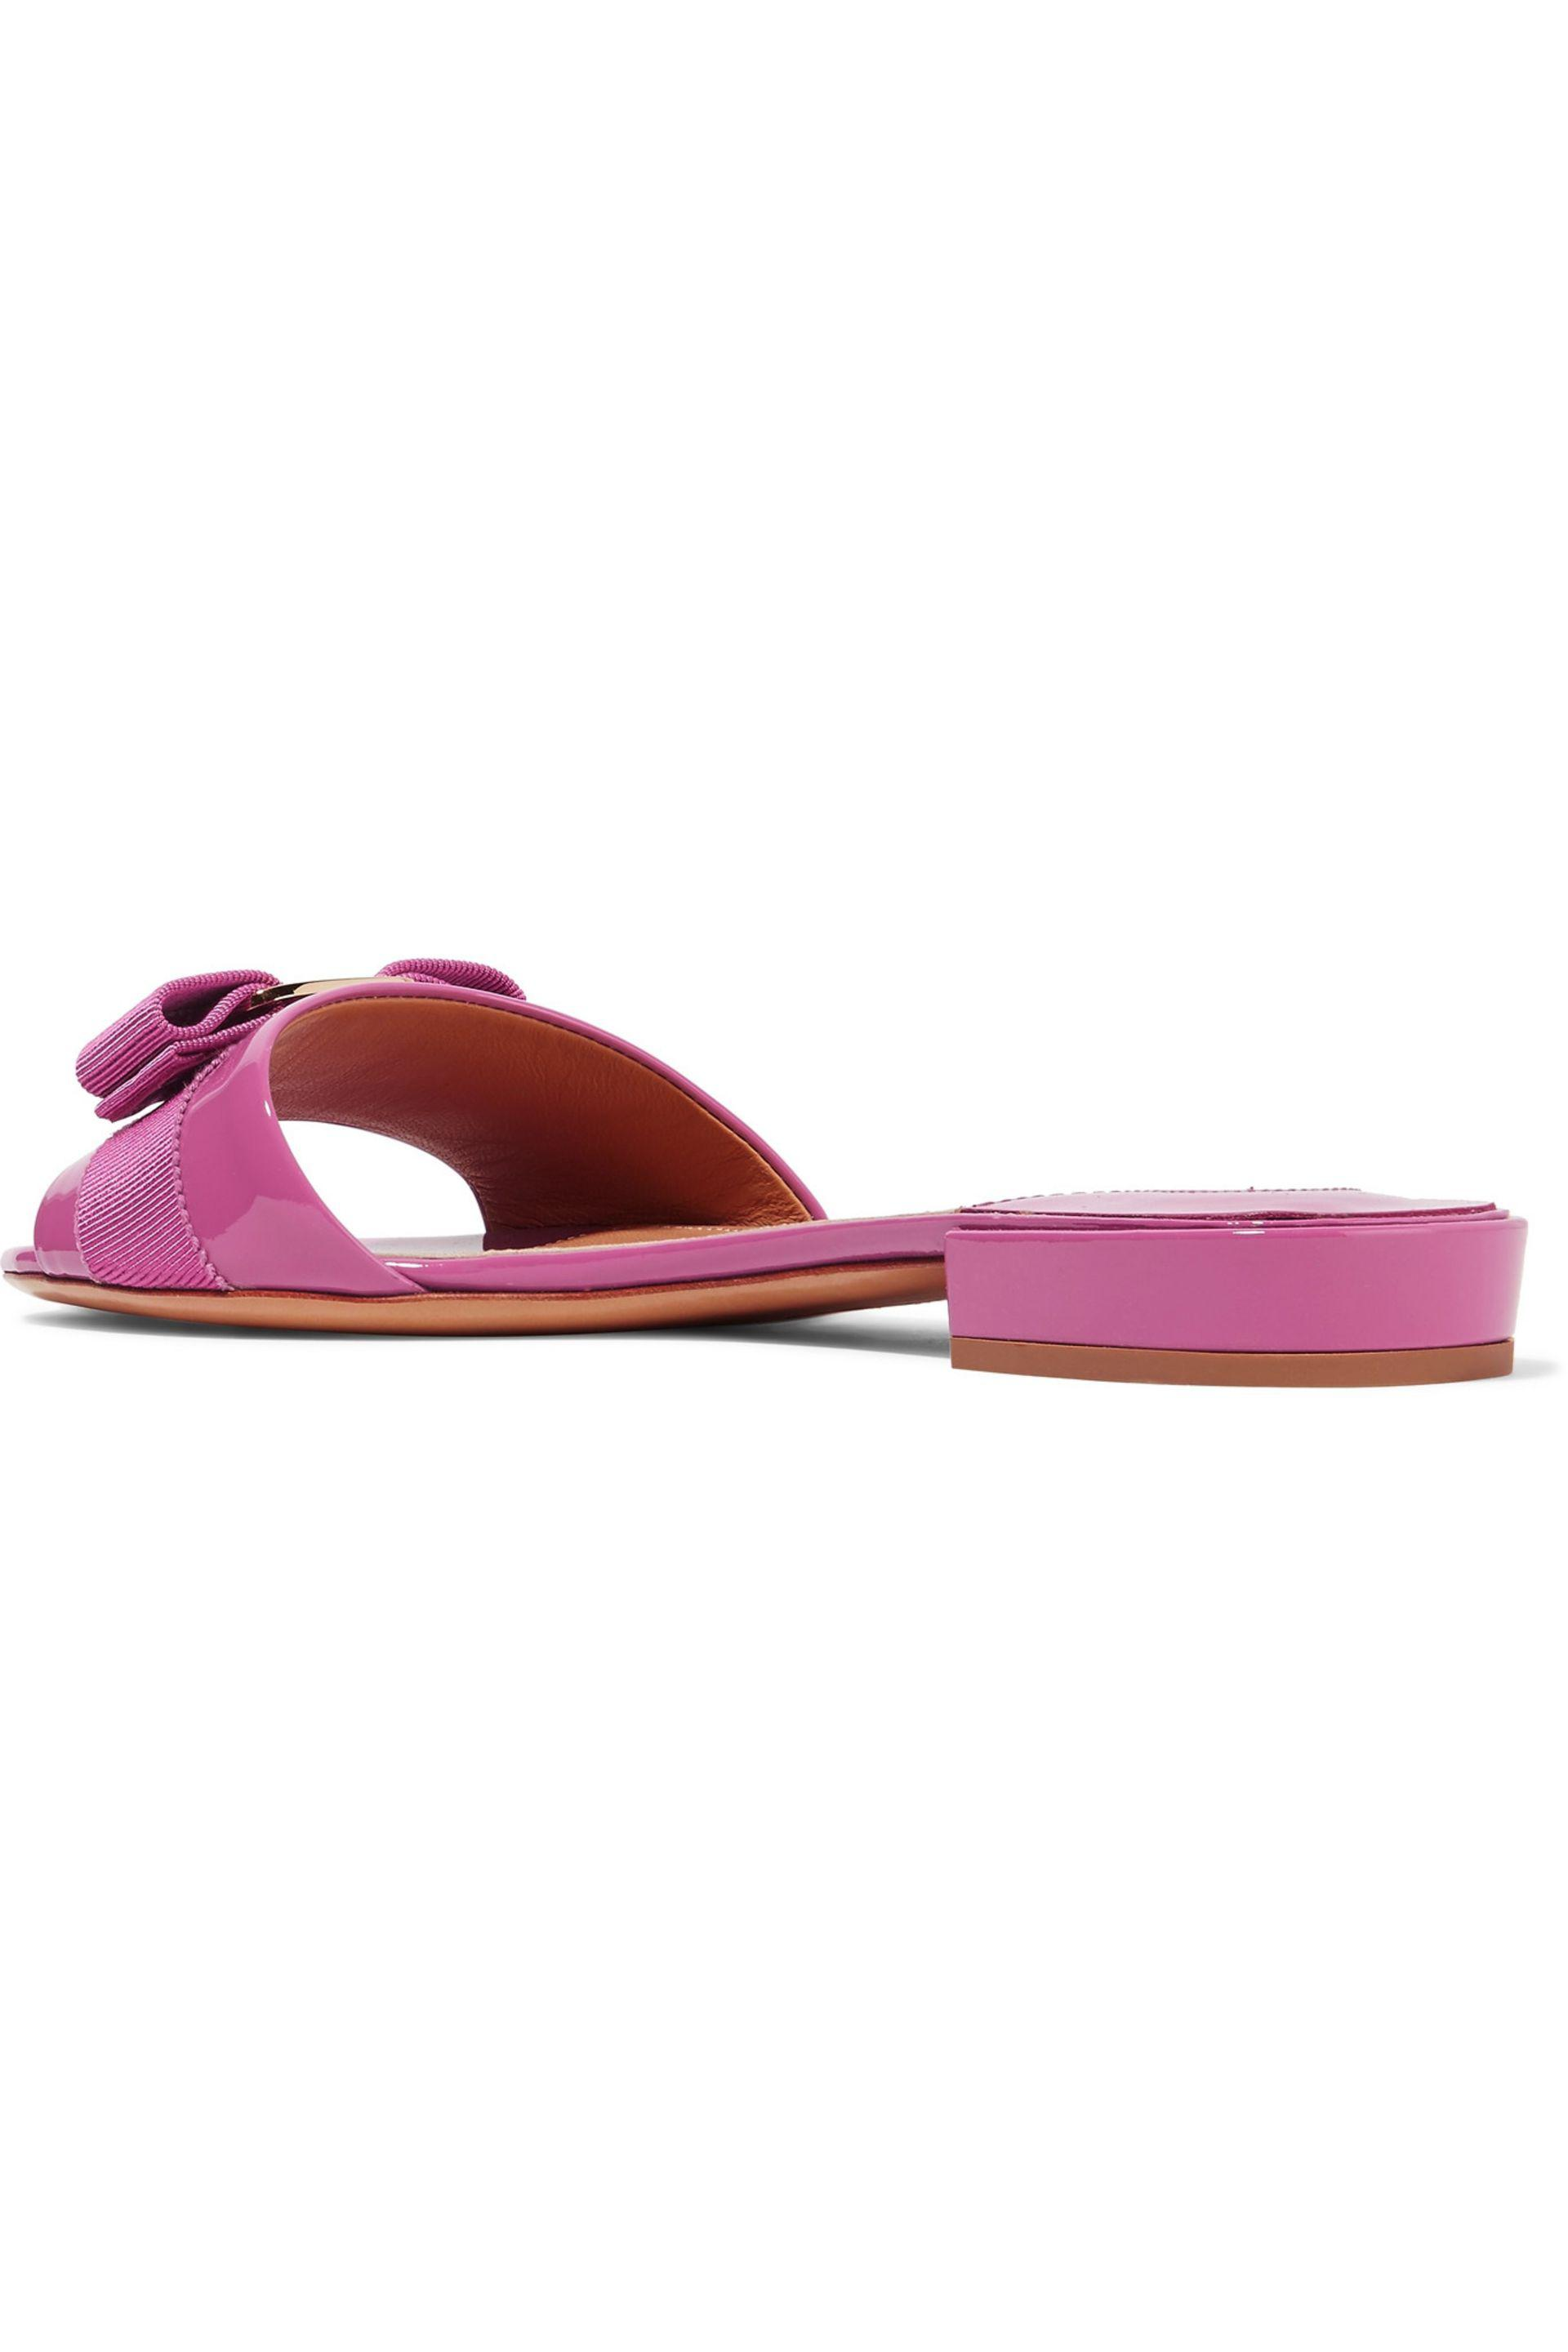 6d1cec33c90e Lyst - Ferragamo Gil Bow-embellished Patent-leather Slides in Pink